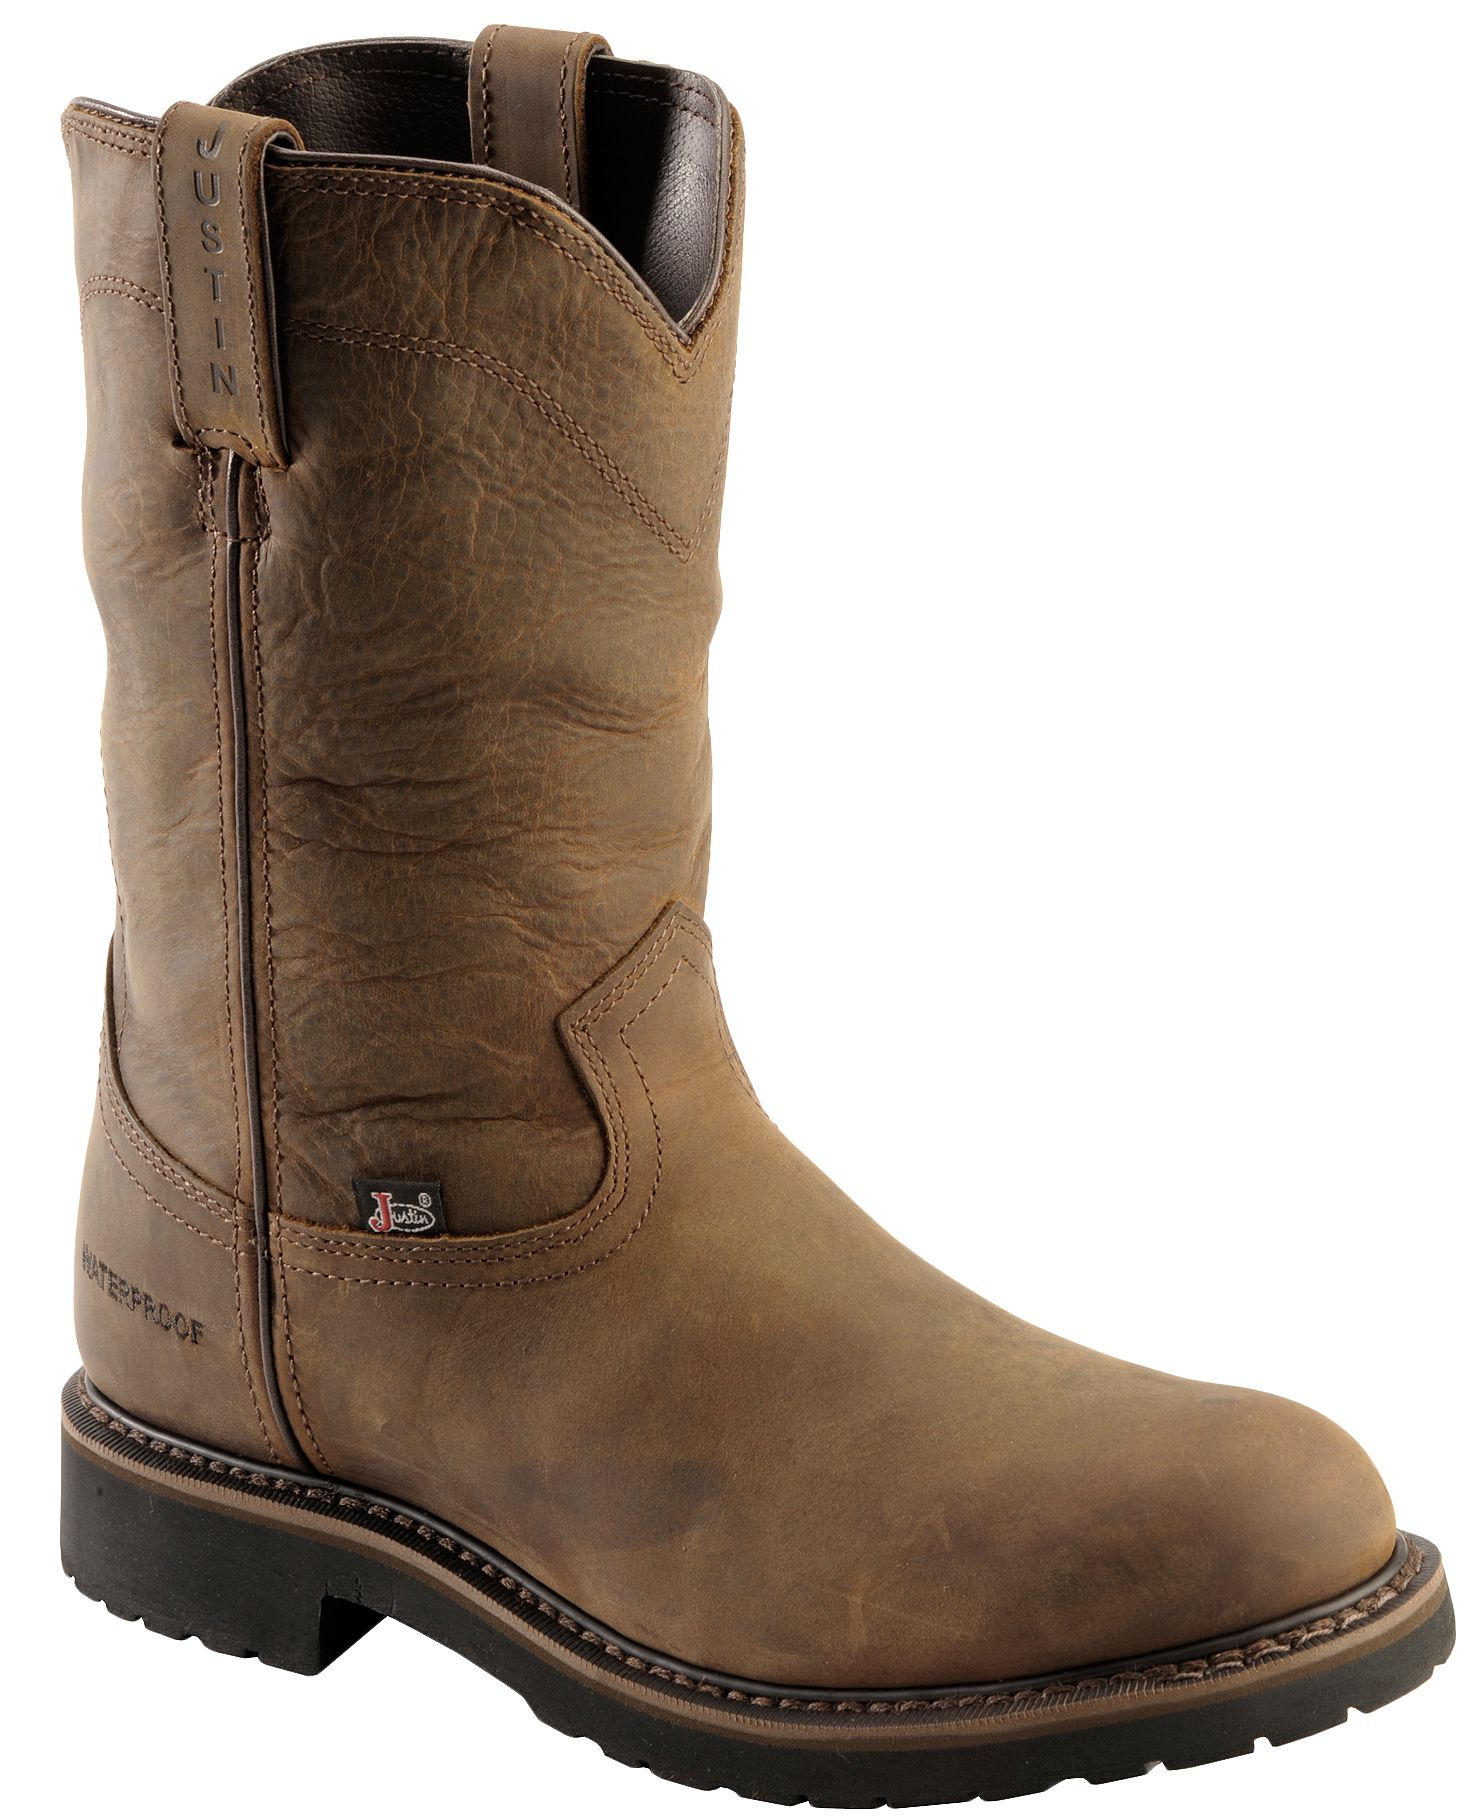 Shop for Men's Western Boots at hereifilessl.ga Eligible for free shipping and free returns.